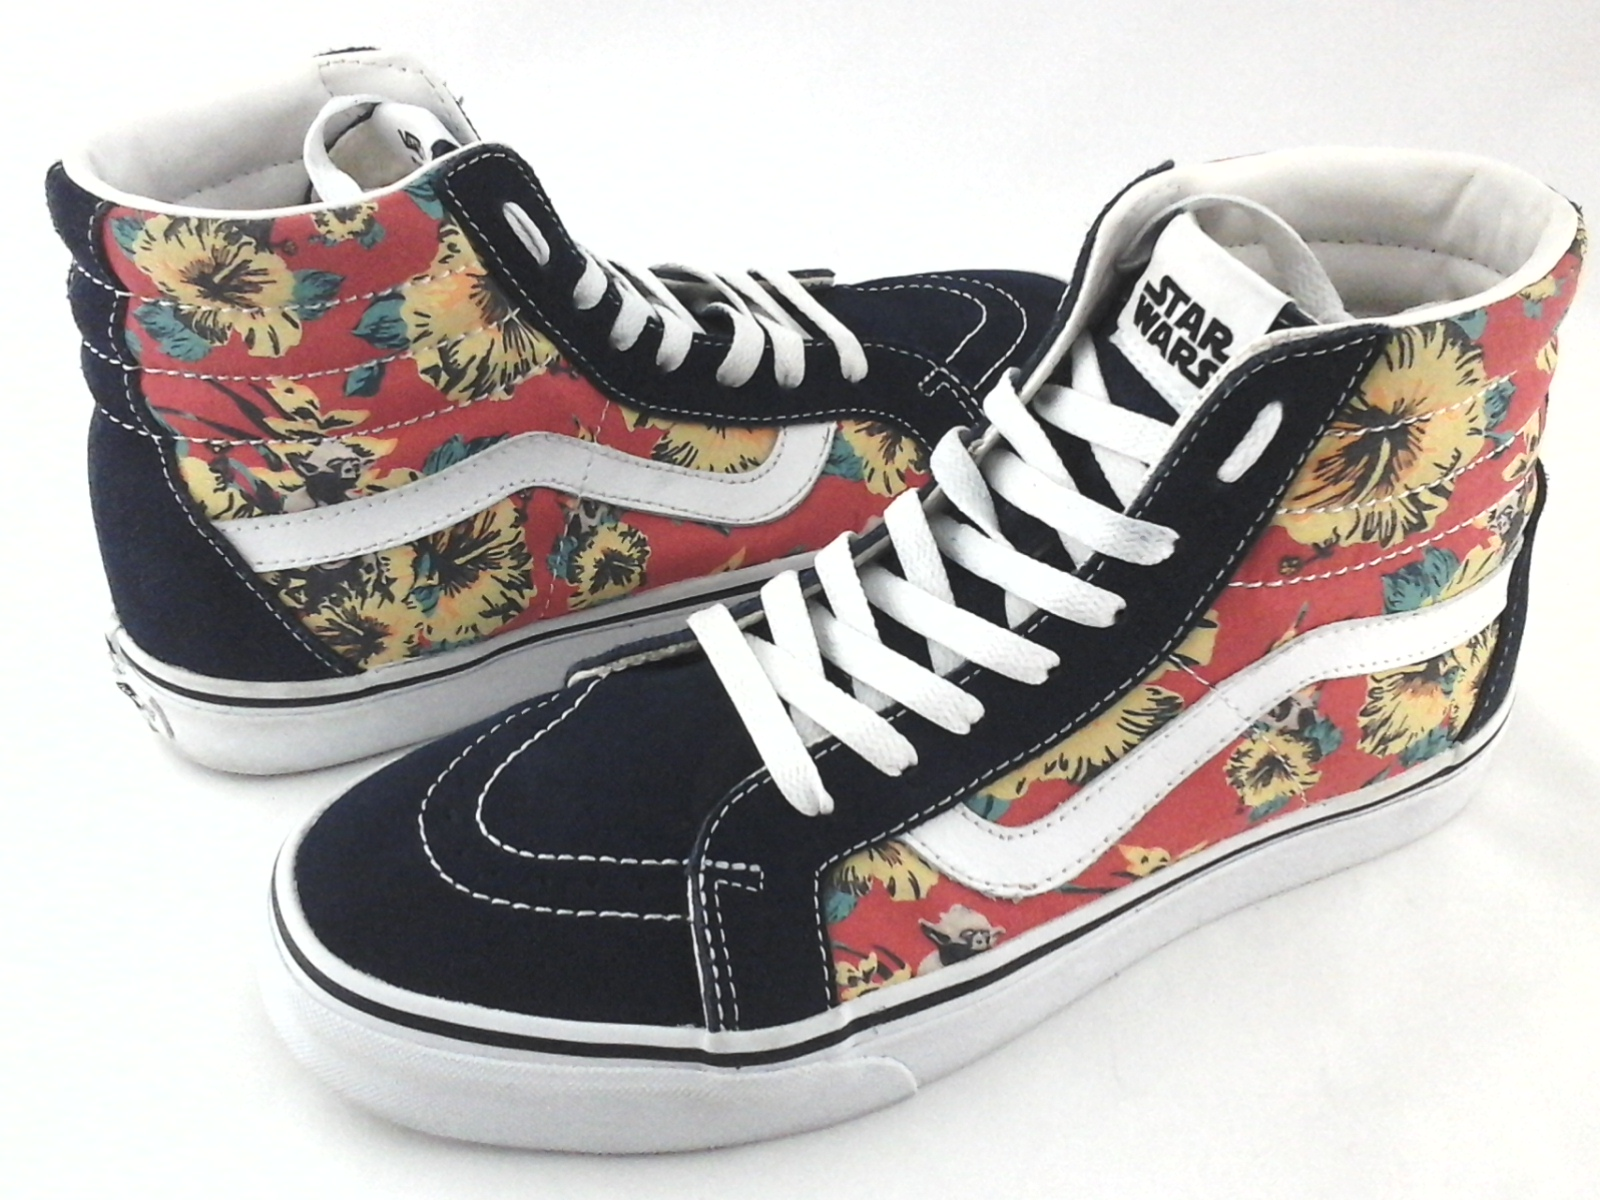 bbf4e4db485 Details about VANS x Star Wars S8-Hi Sneakers Yoda Aloha Floral Shoes Men s  US 9 Women s 10.5